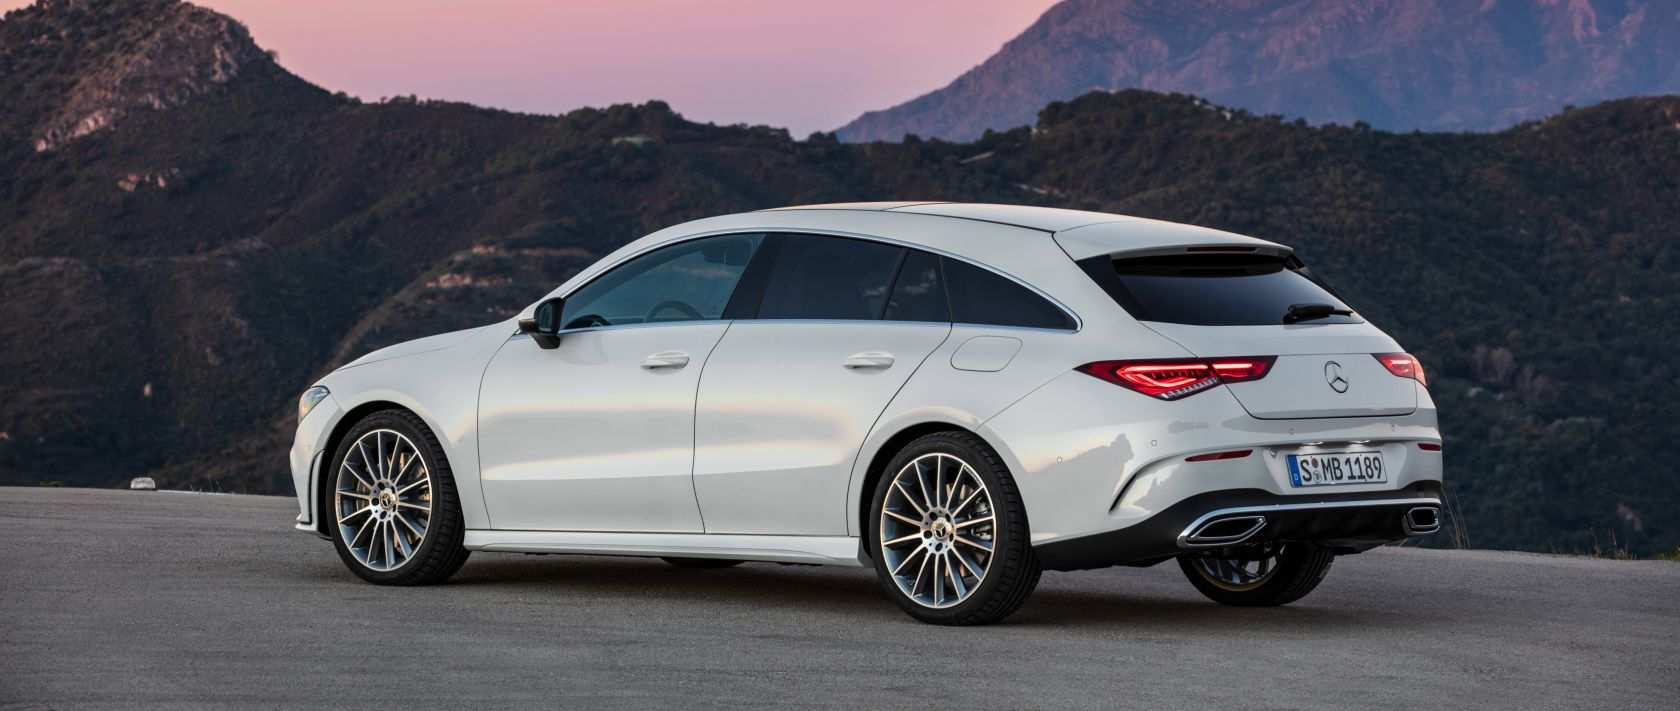 51 Best 2019 Mercedes CLA 250 Price And Review